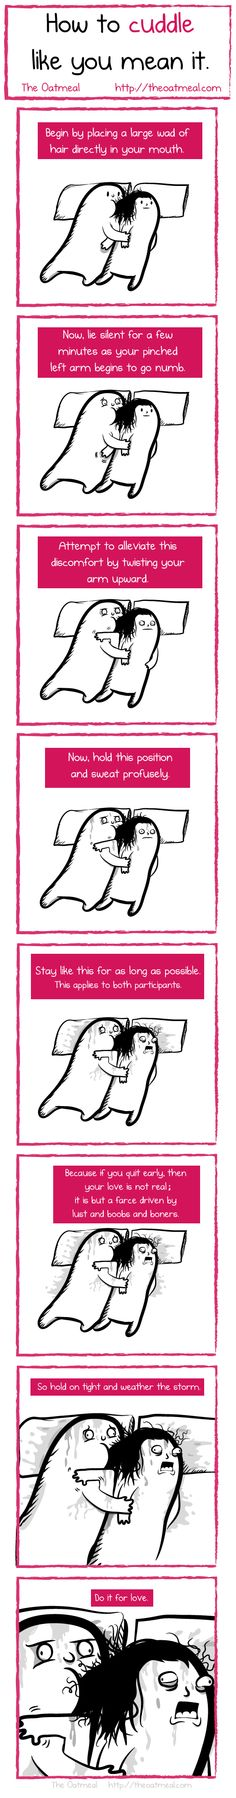 how to cuddle like you mean it (boyfriend insisted on testing this) - the oatmeal